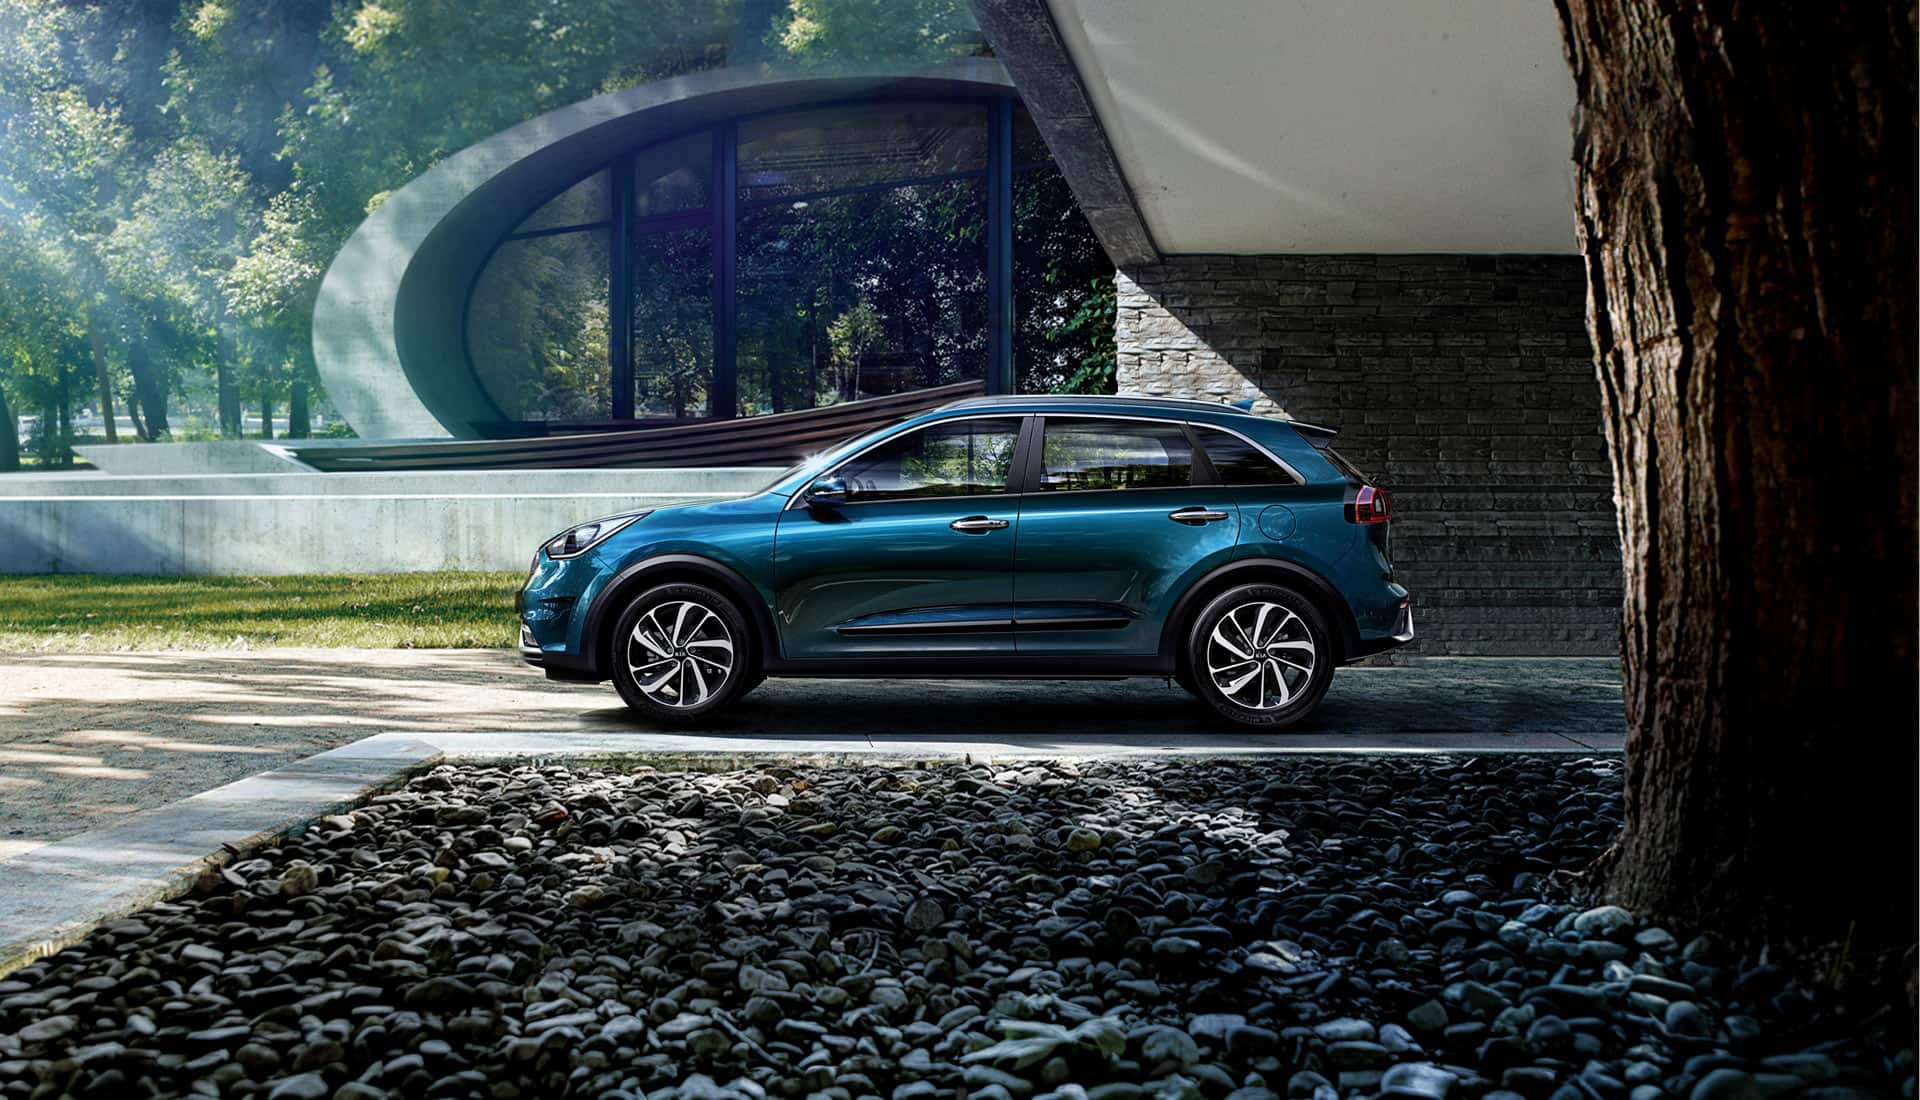 New Kia Niro versatile efficient hybrid crossover